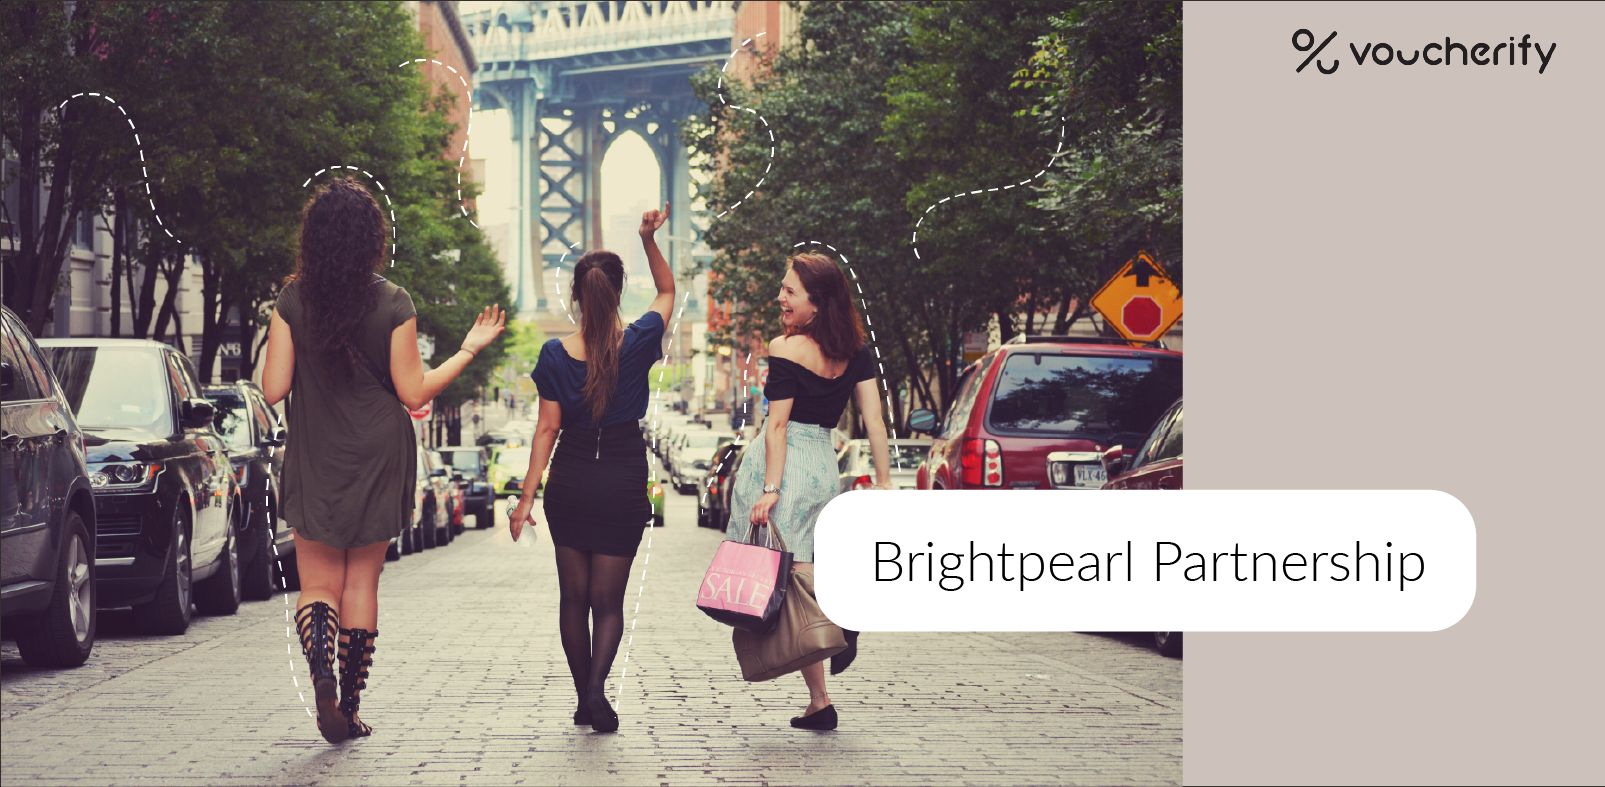 Deliver unique e-commerce experiences with Brightpearl and Voucherify